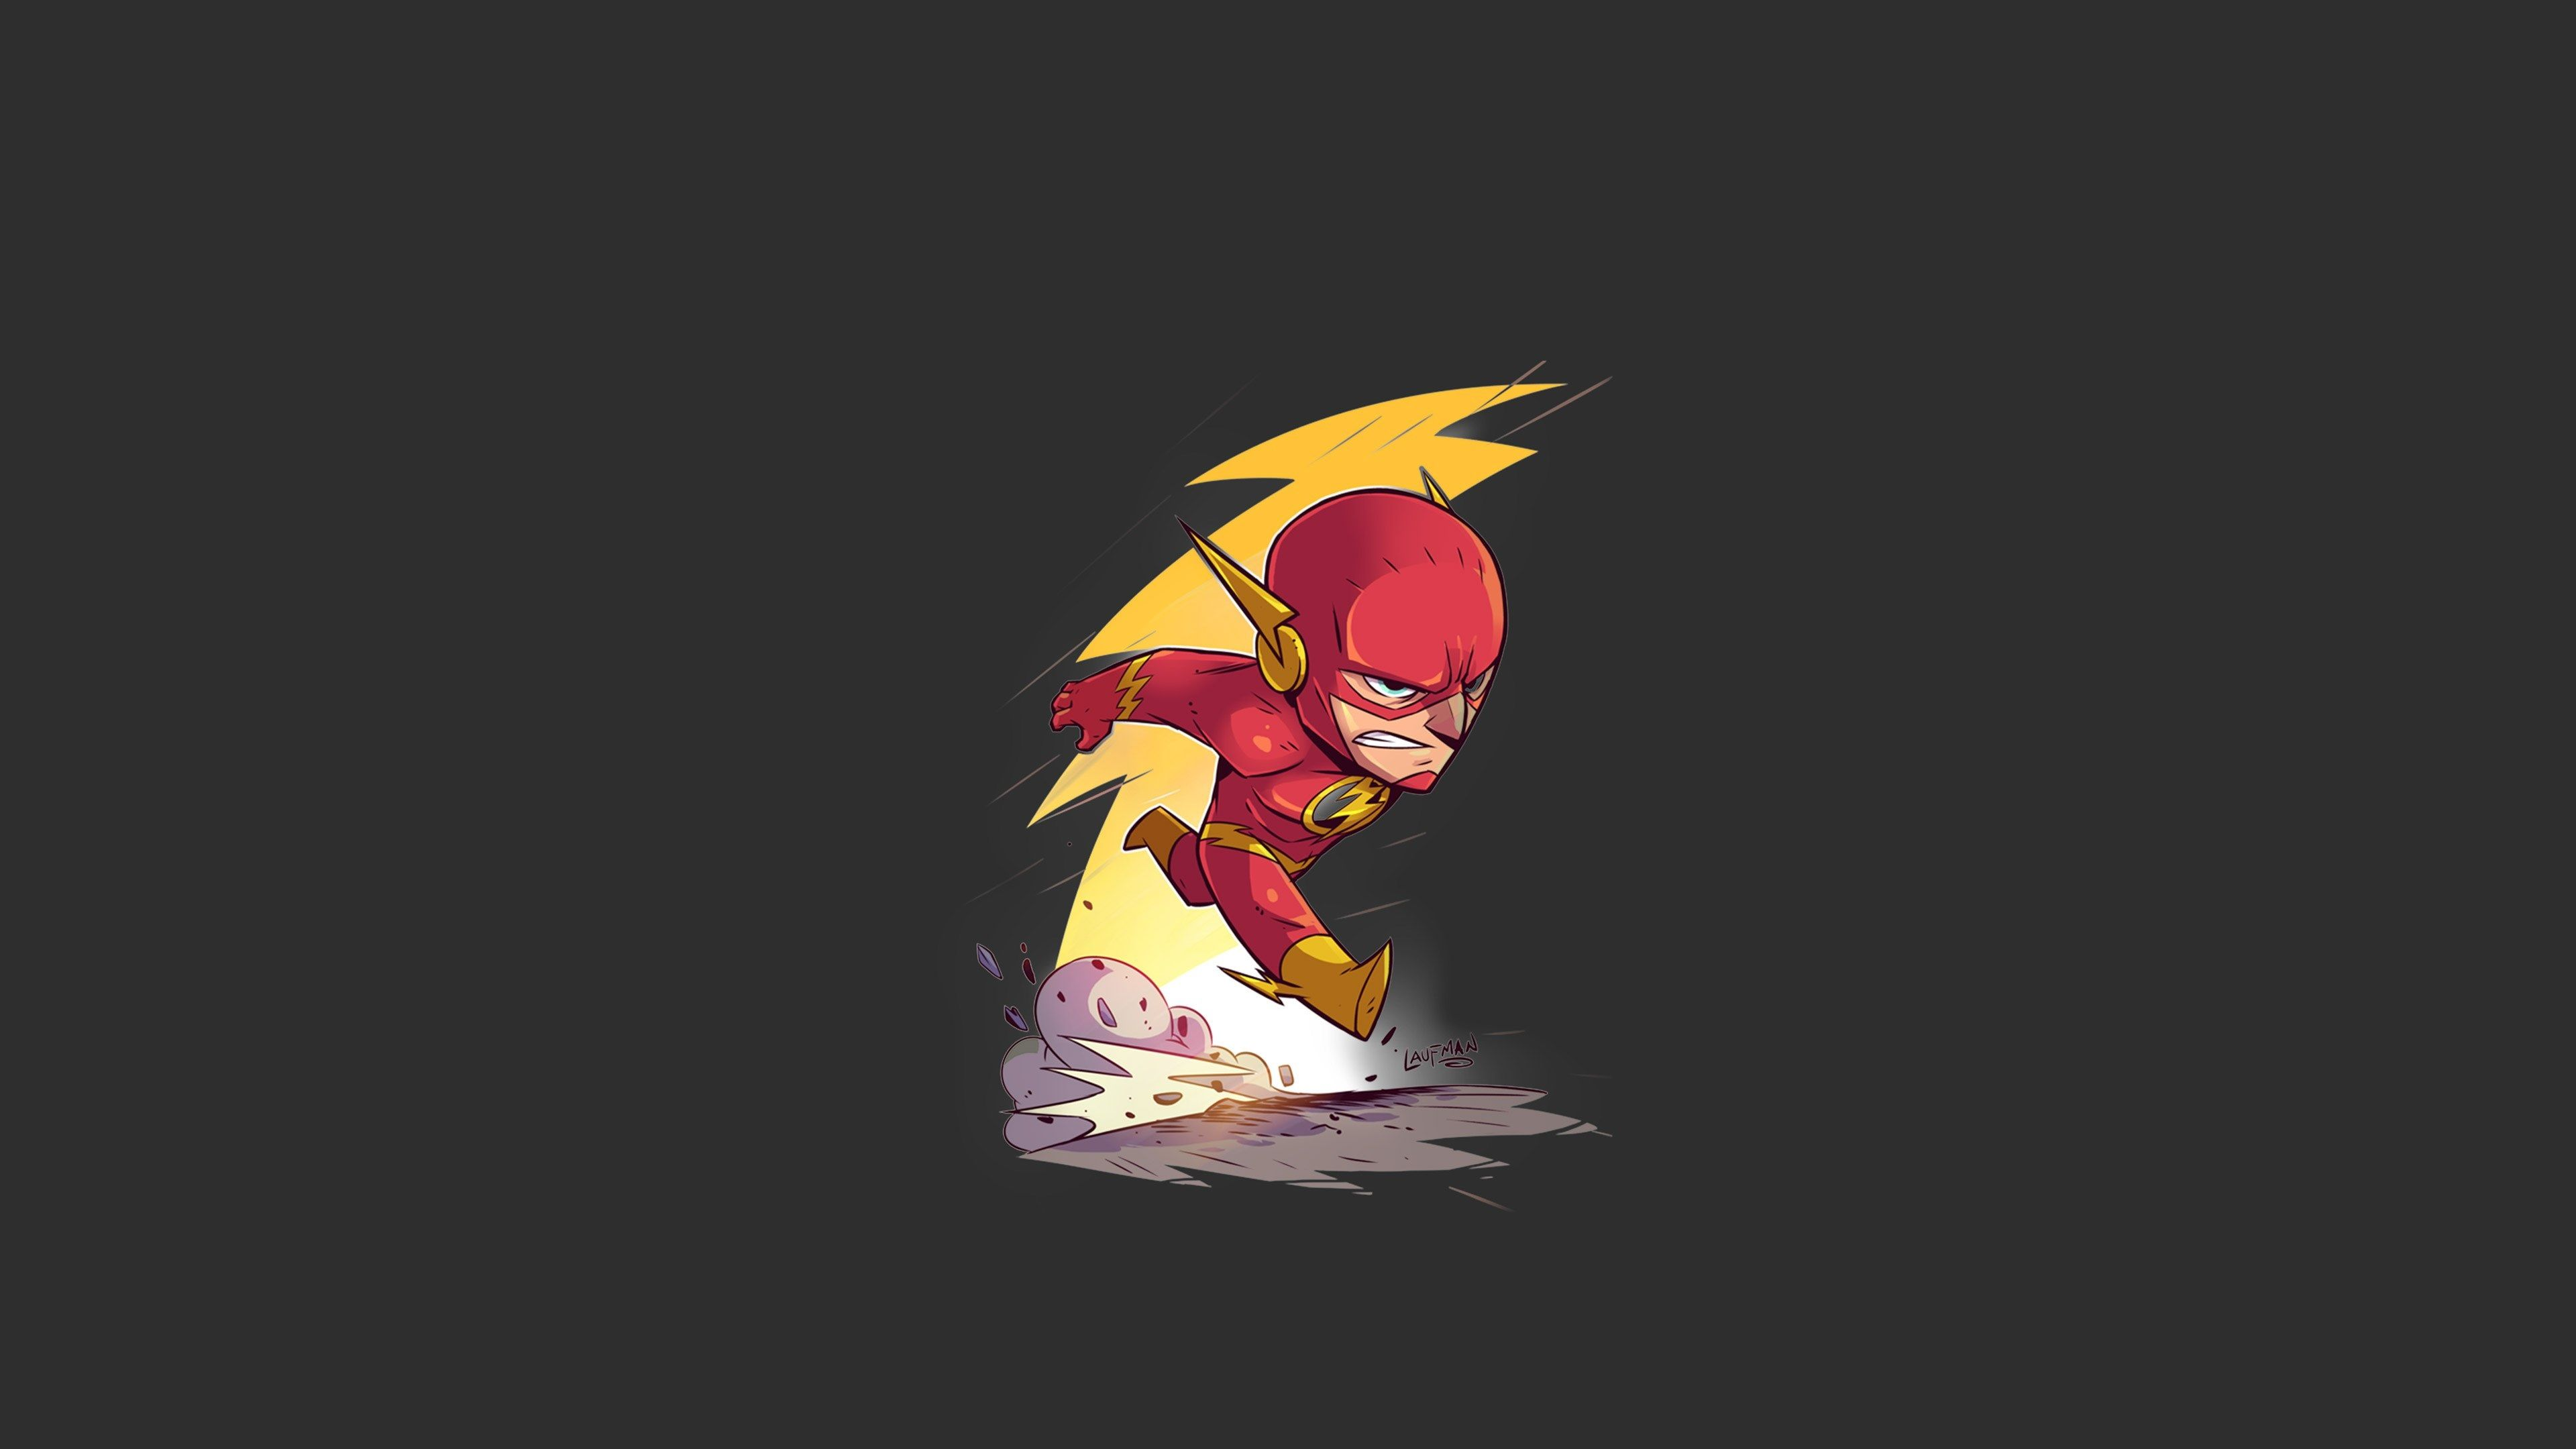 3840x2160 Flash 4k Wallpaper For Mac Computers The Flash Cartoon Flash Wallpaper Chibi